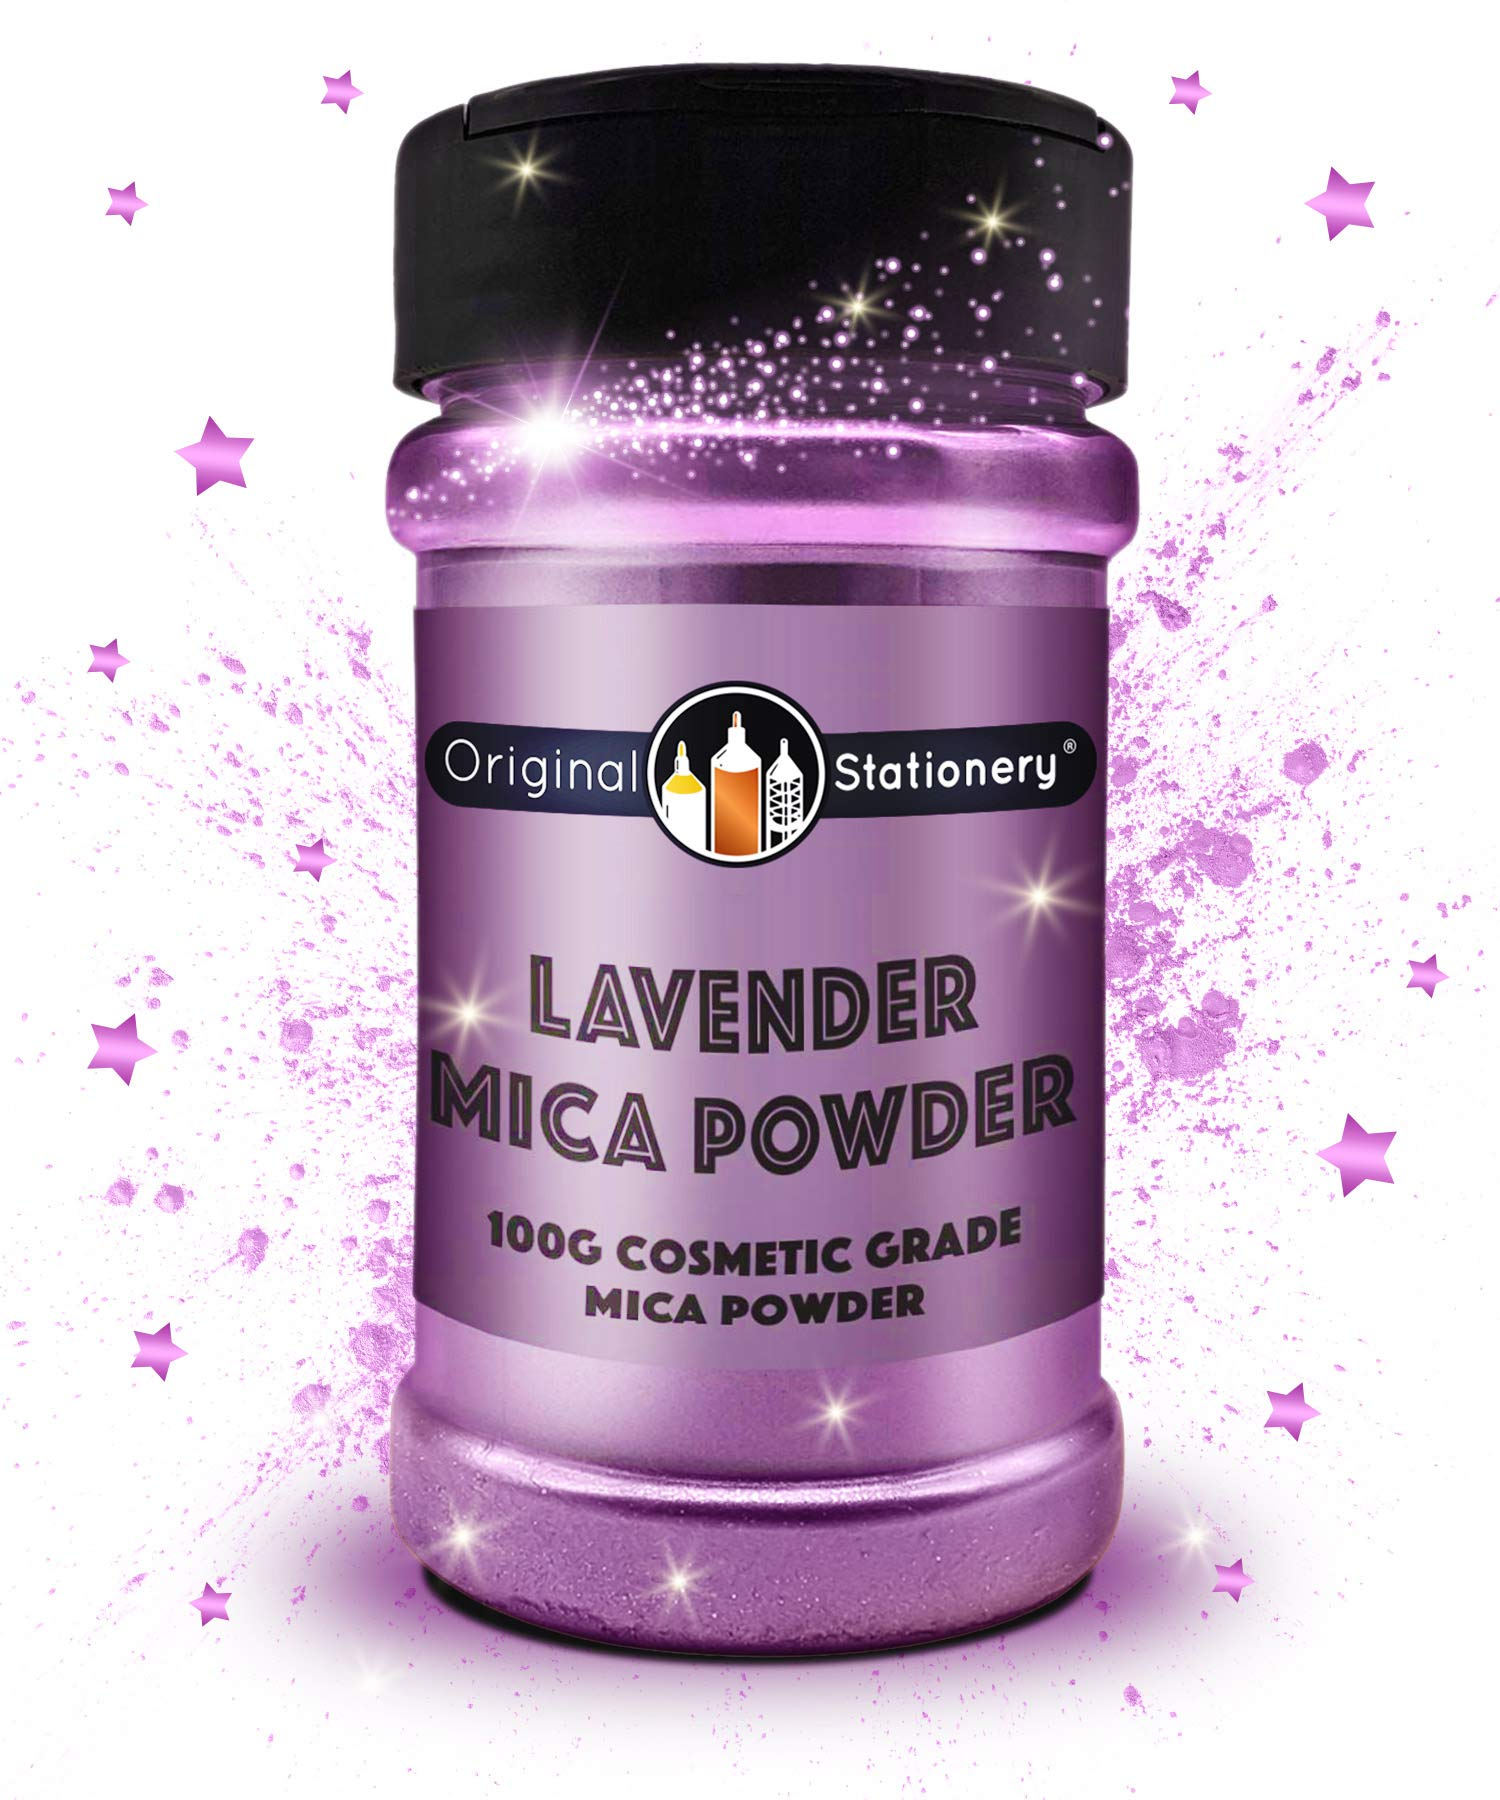 Mica Powder - 3.5 ounces / 100 grams [HUGE x3-5 THE SIZE OF OUR COMPETITORS] Cosmetic Grade – True Colors – Beautiful Mica for Slime, Soap, Bath Bombs, Make-up, Nails, Decor (Lavender)